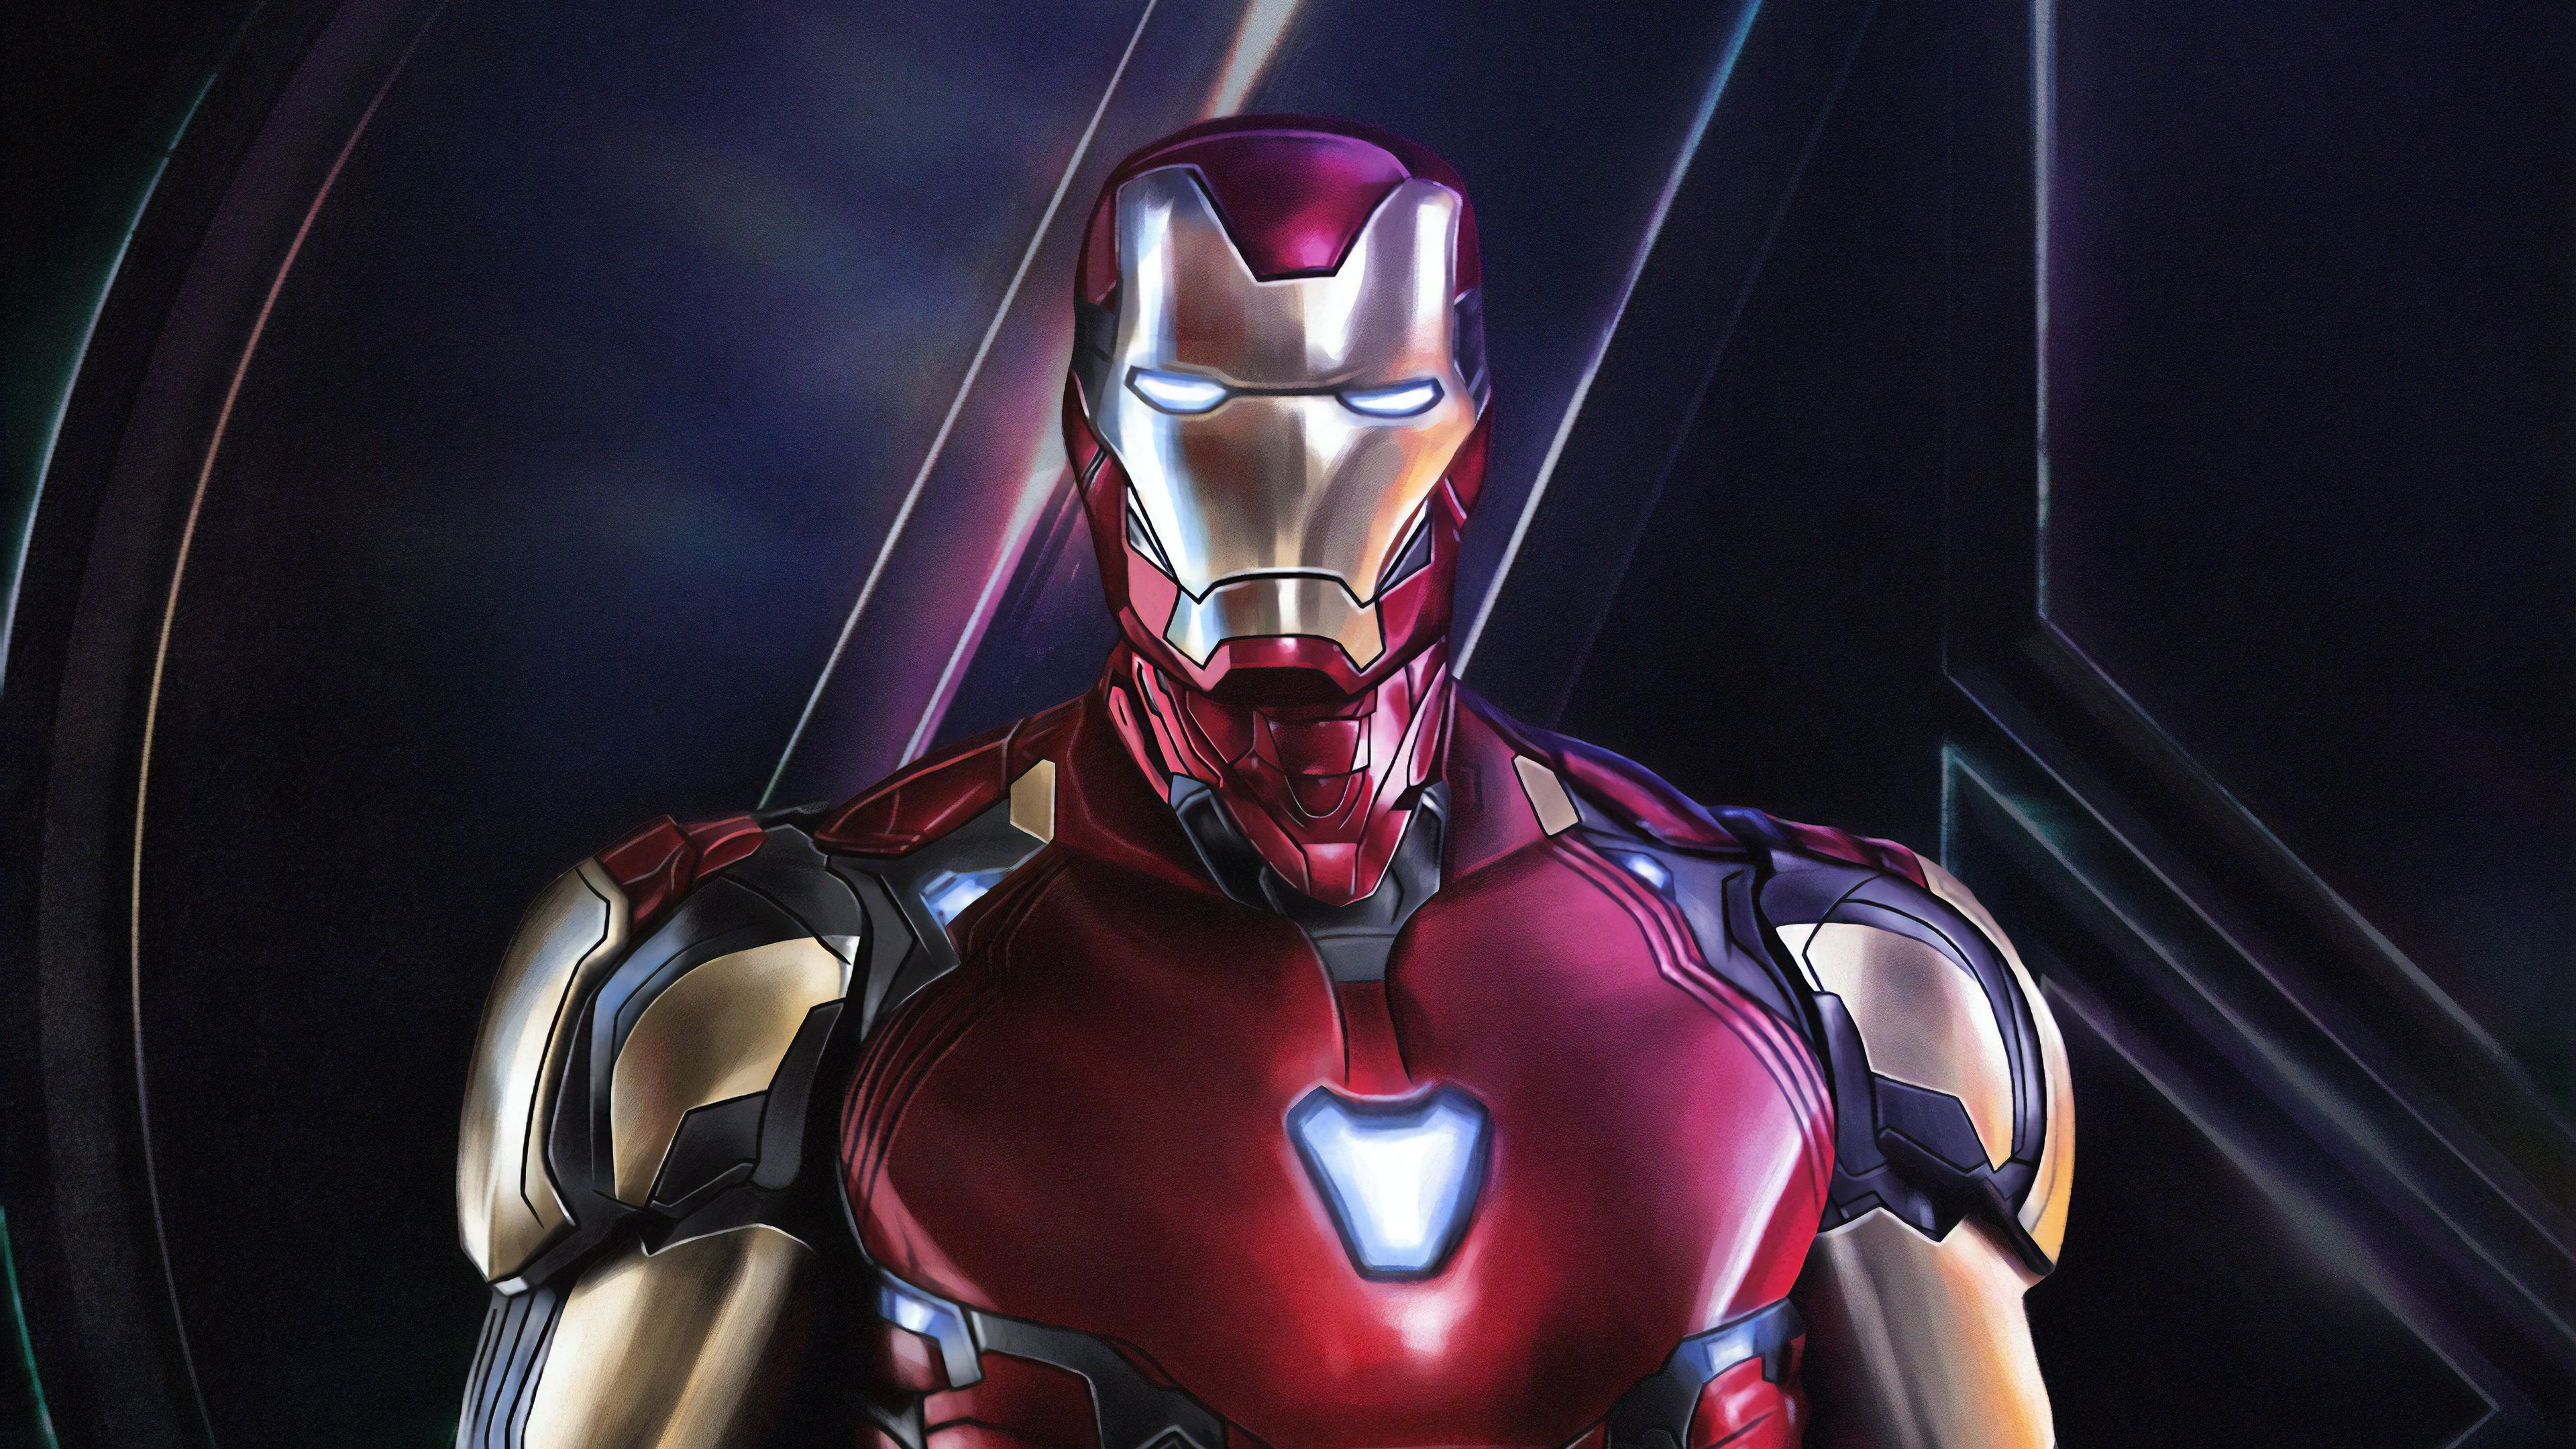 4k Iron Man Avengers Endgame Superheroes Wallpapers Iron Man Wallpapers Hd Wallpapers Digital Art Wallpape In 2020 Iron Man Hd Wallpaper Iron Man Iron Man Wallpaper